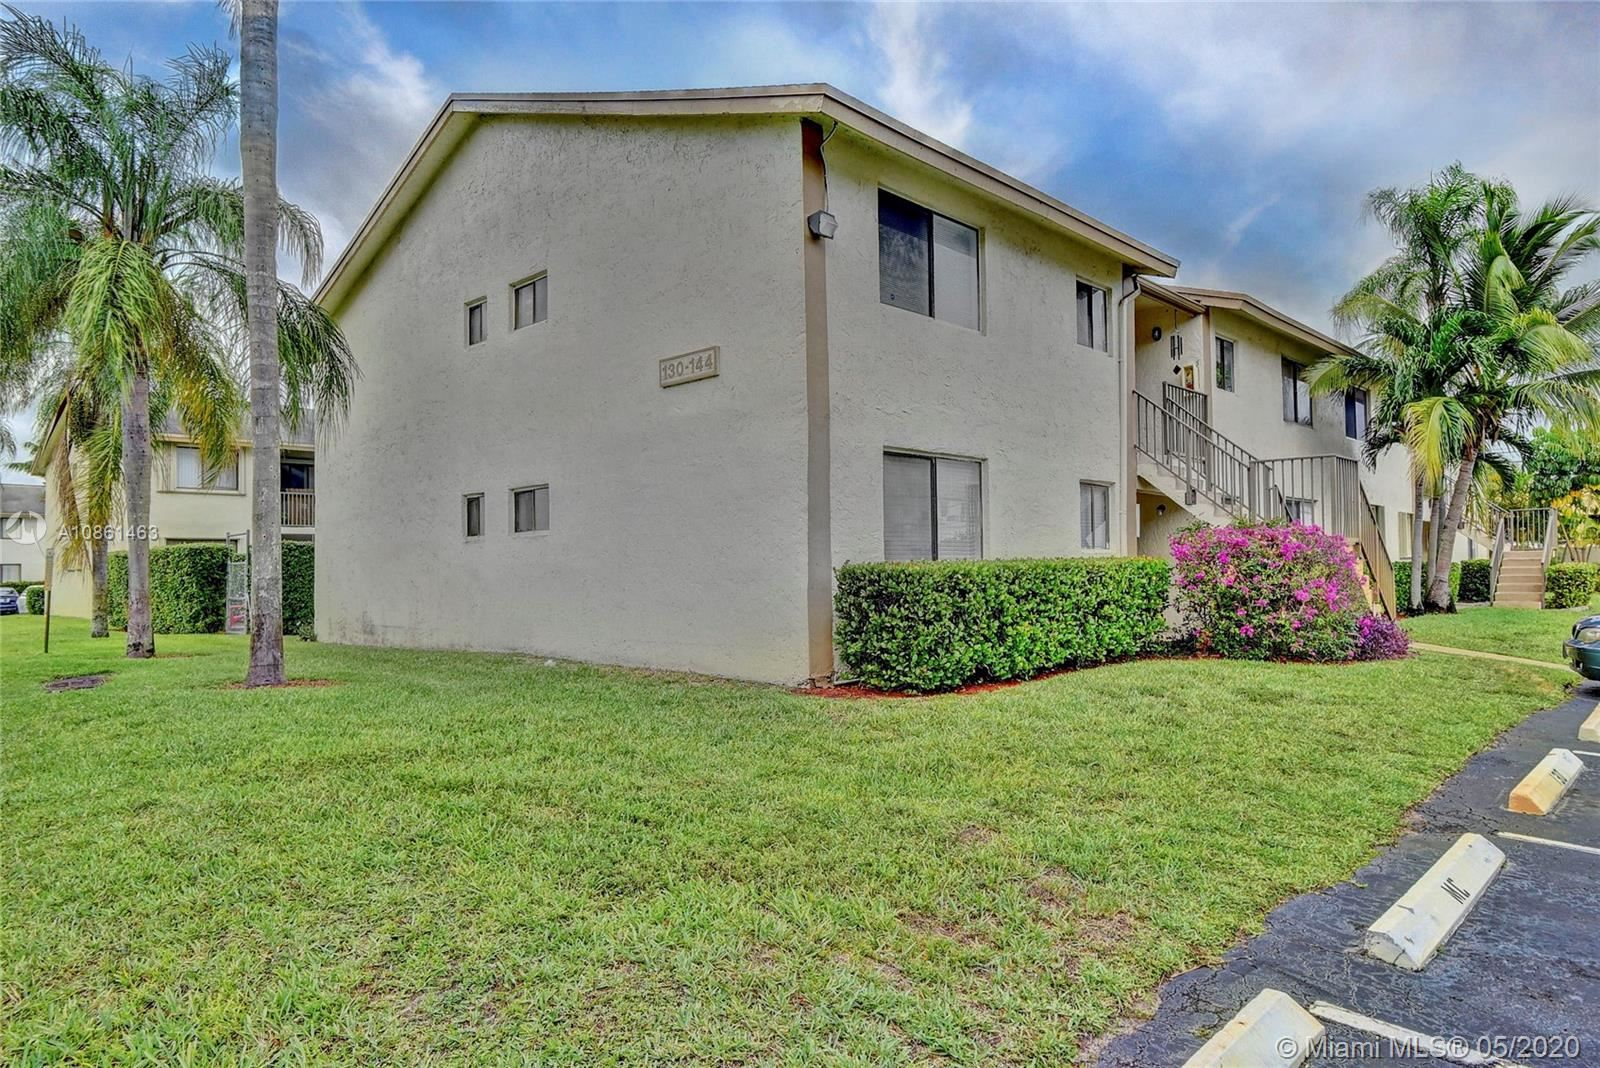 130 NW 60th Ave #1-2, Margate, FL 33063 - #: A10861463